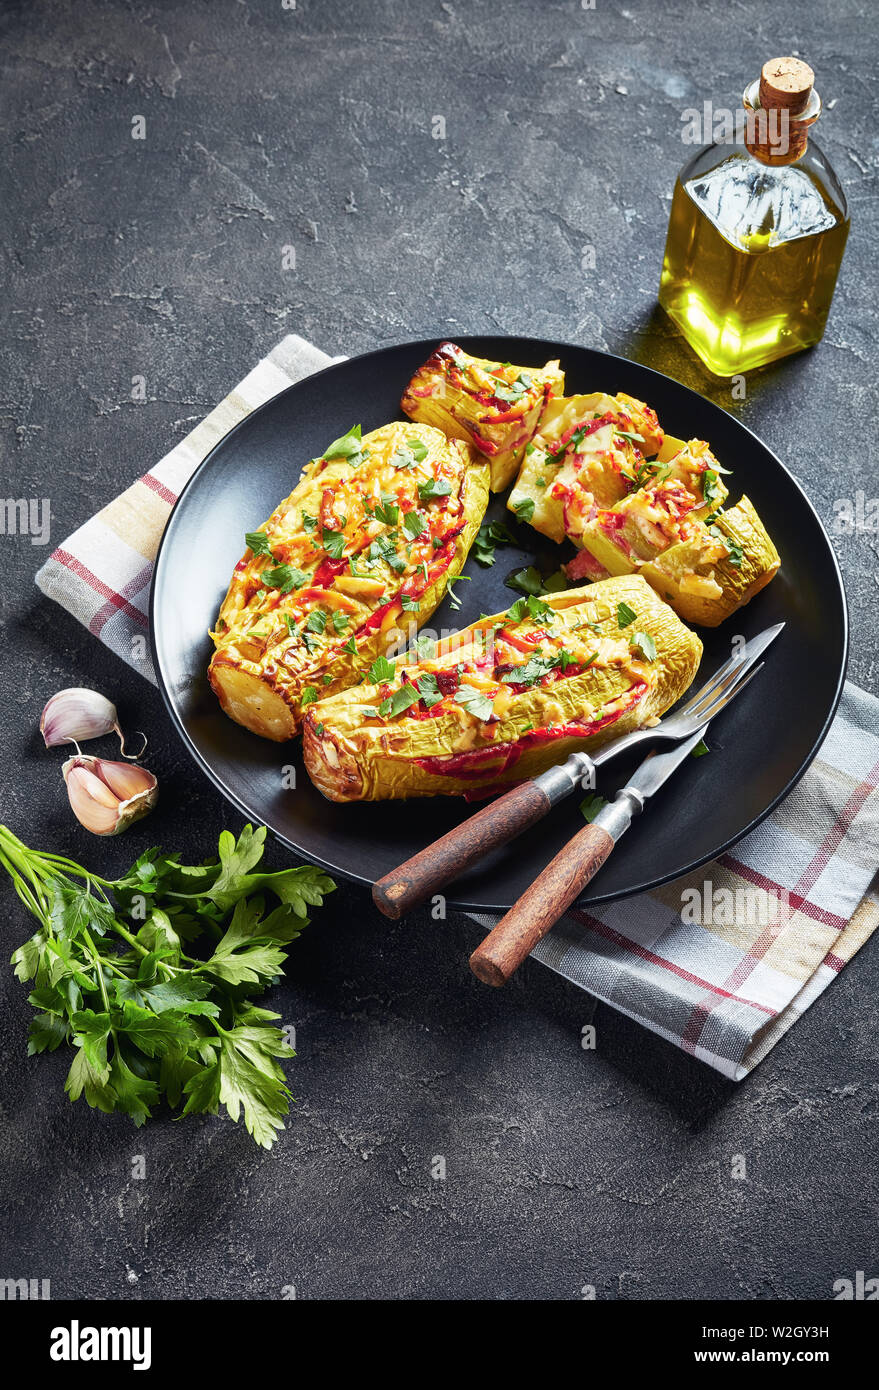 Stuffed zucchini with tomato slices, onion and cheese served on a black plate with fork and knife, vertical view from above - Stock Image